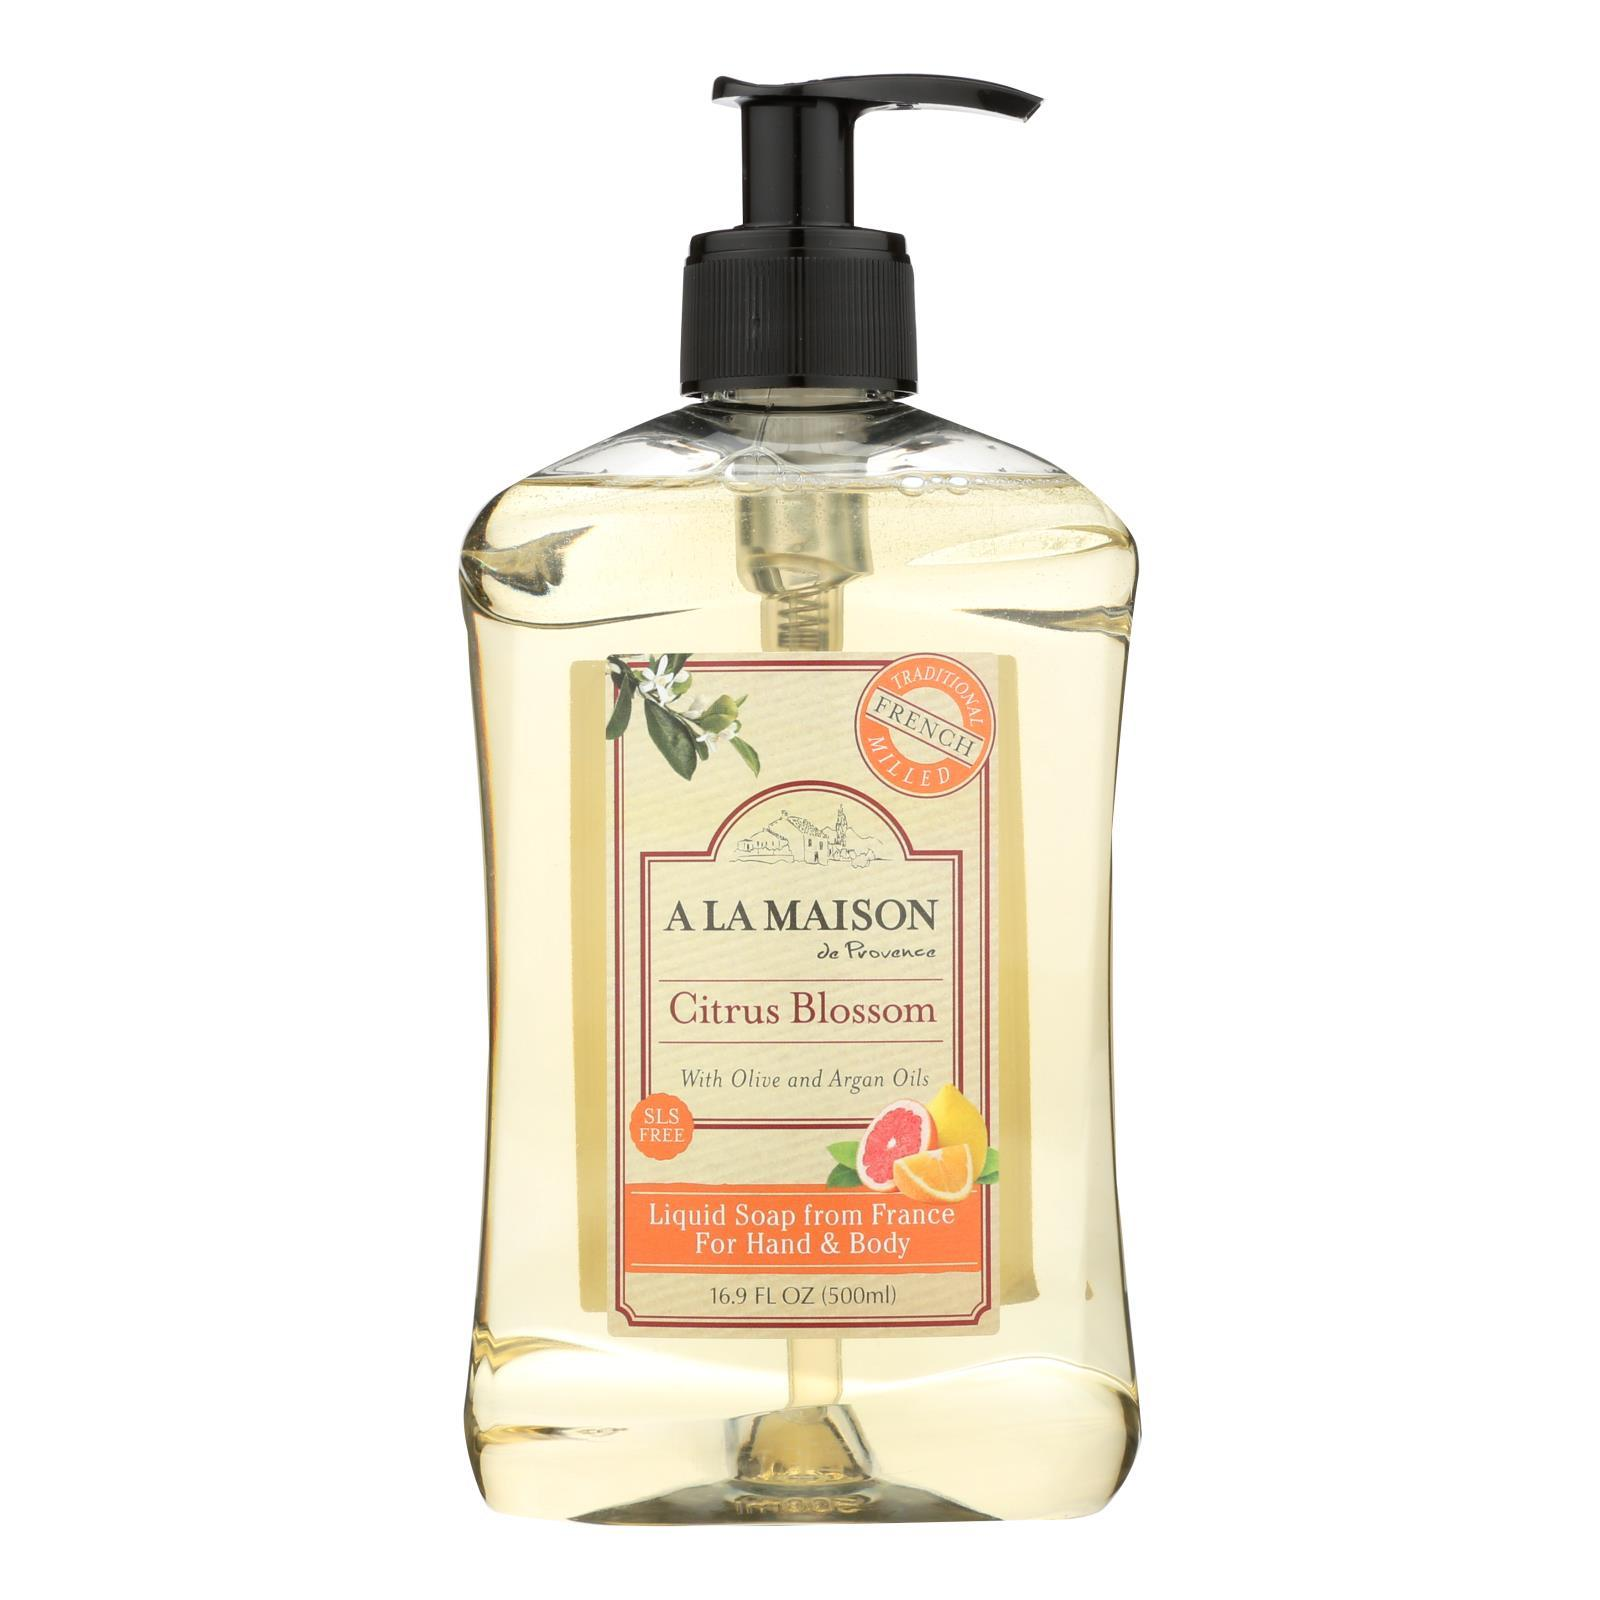 Primary image for A La Maison - Liquid Hand Soap - Citrus Blossom - 16.9 fl oz.